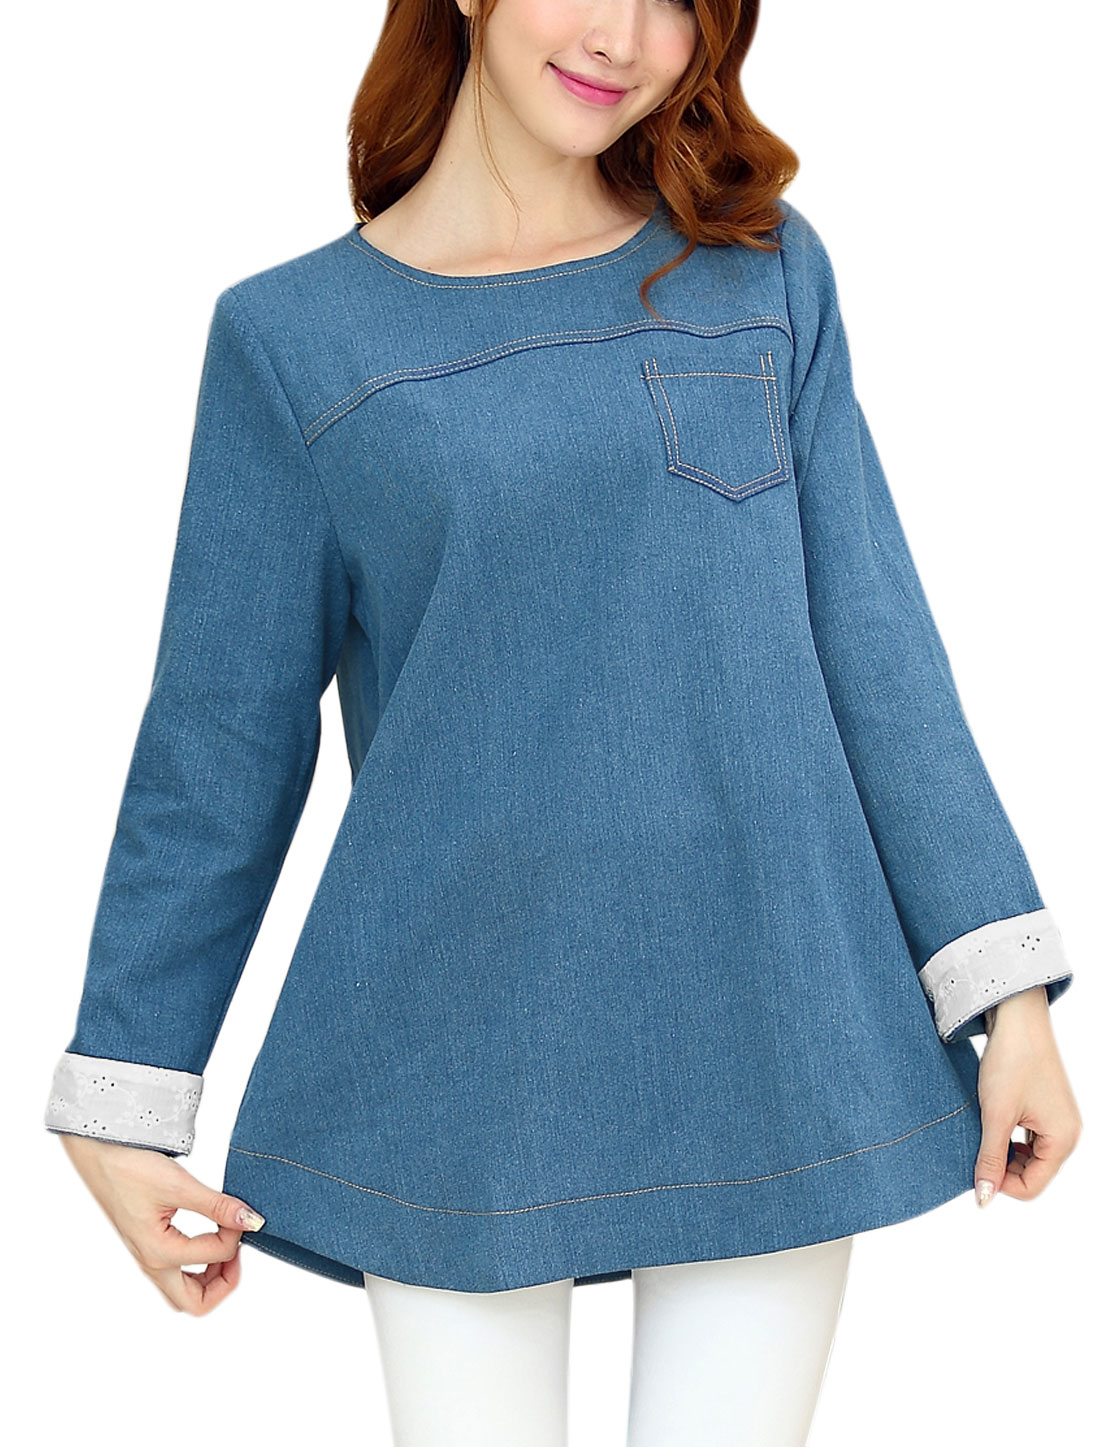 Maternity Single Bust Pocket Button Decor Zipper Back Denim Top Blue L